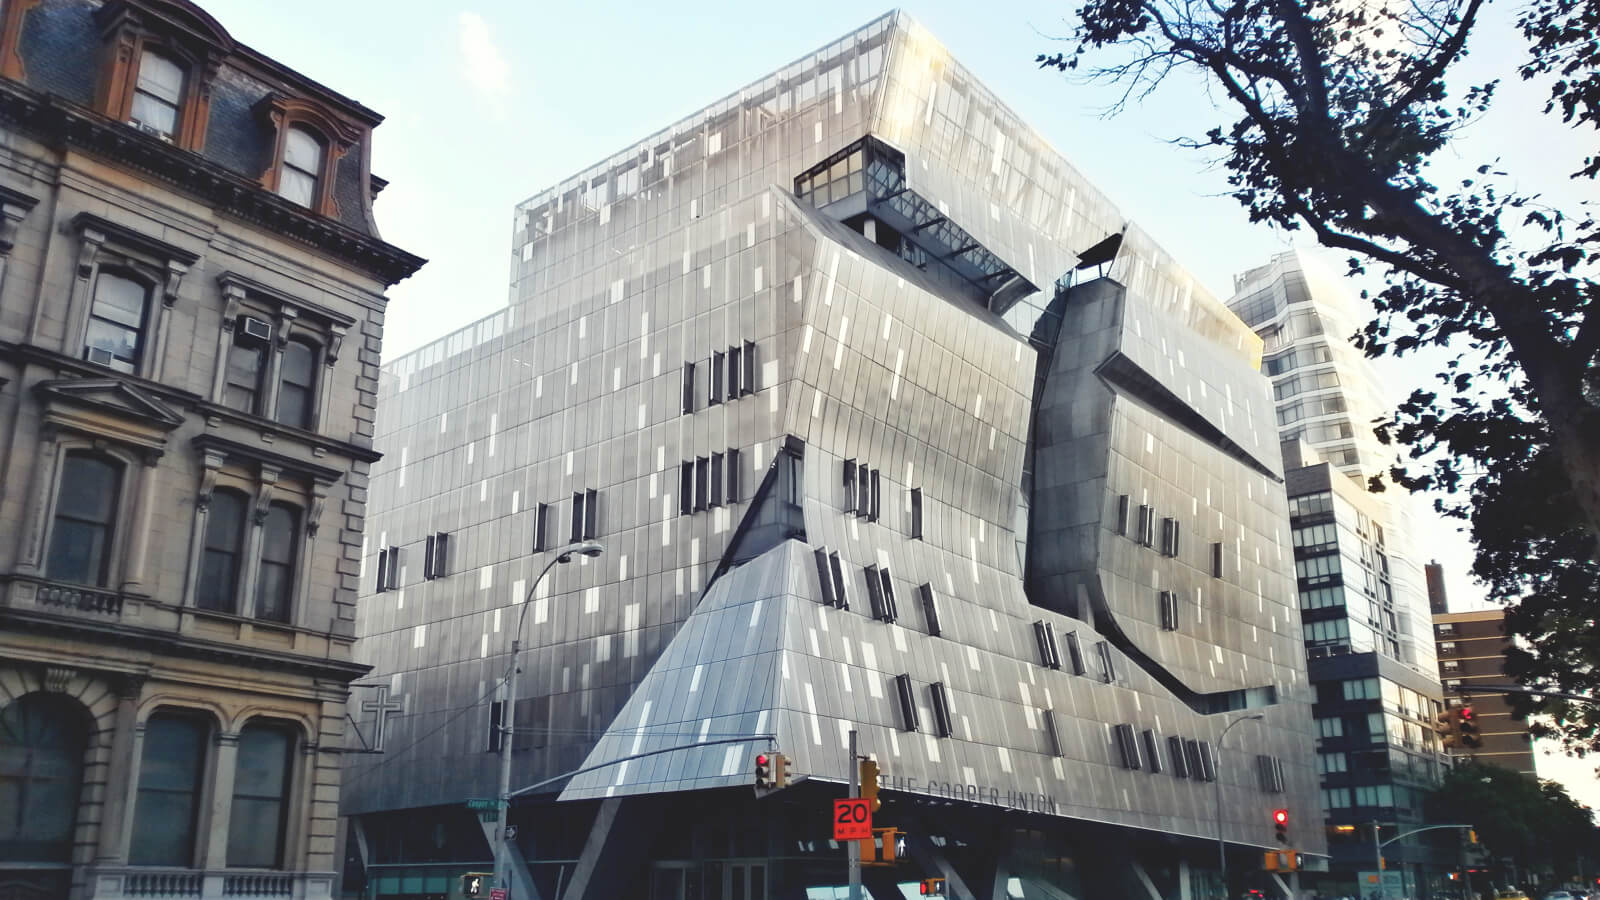 A picture of a building at the Cooper Union campus.